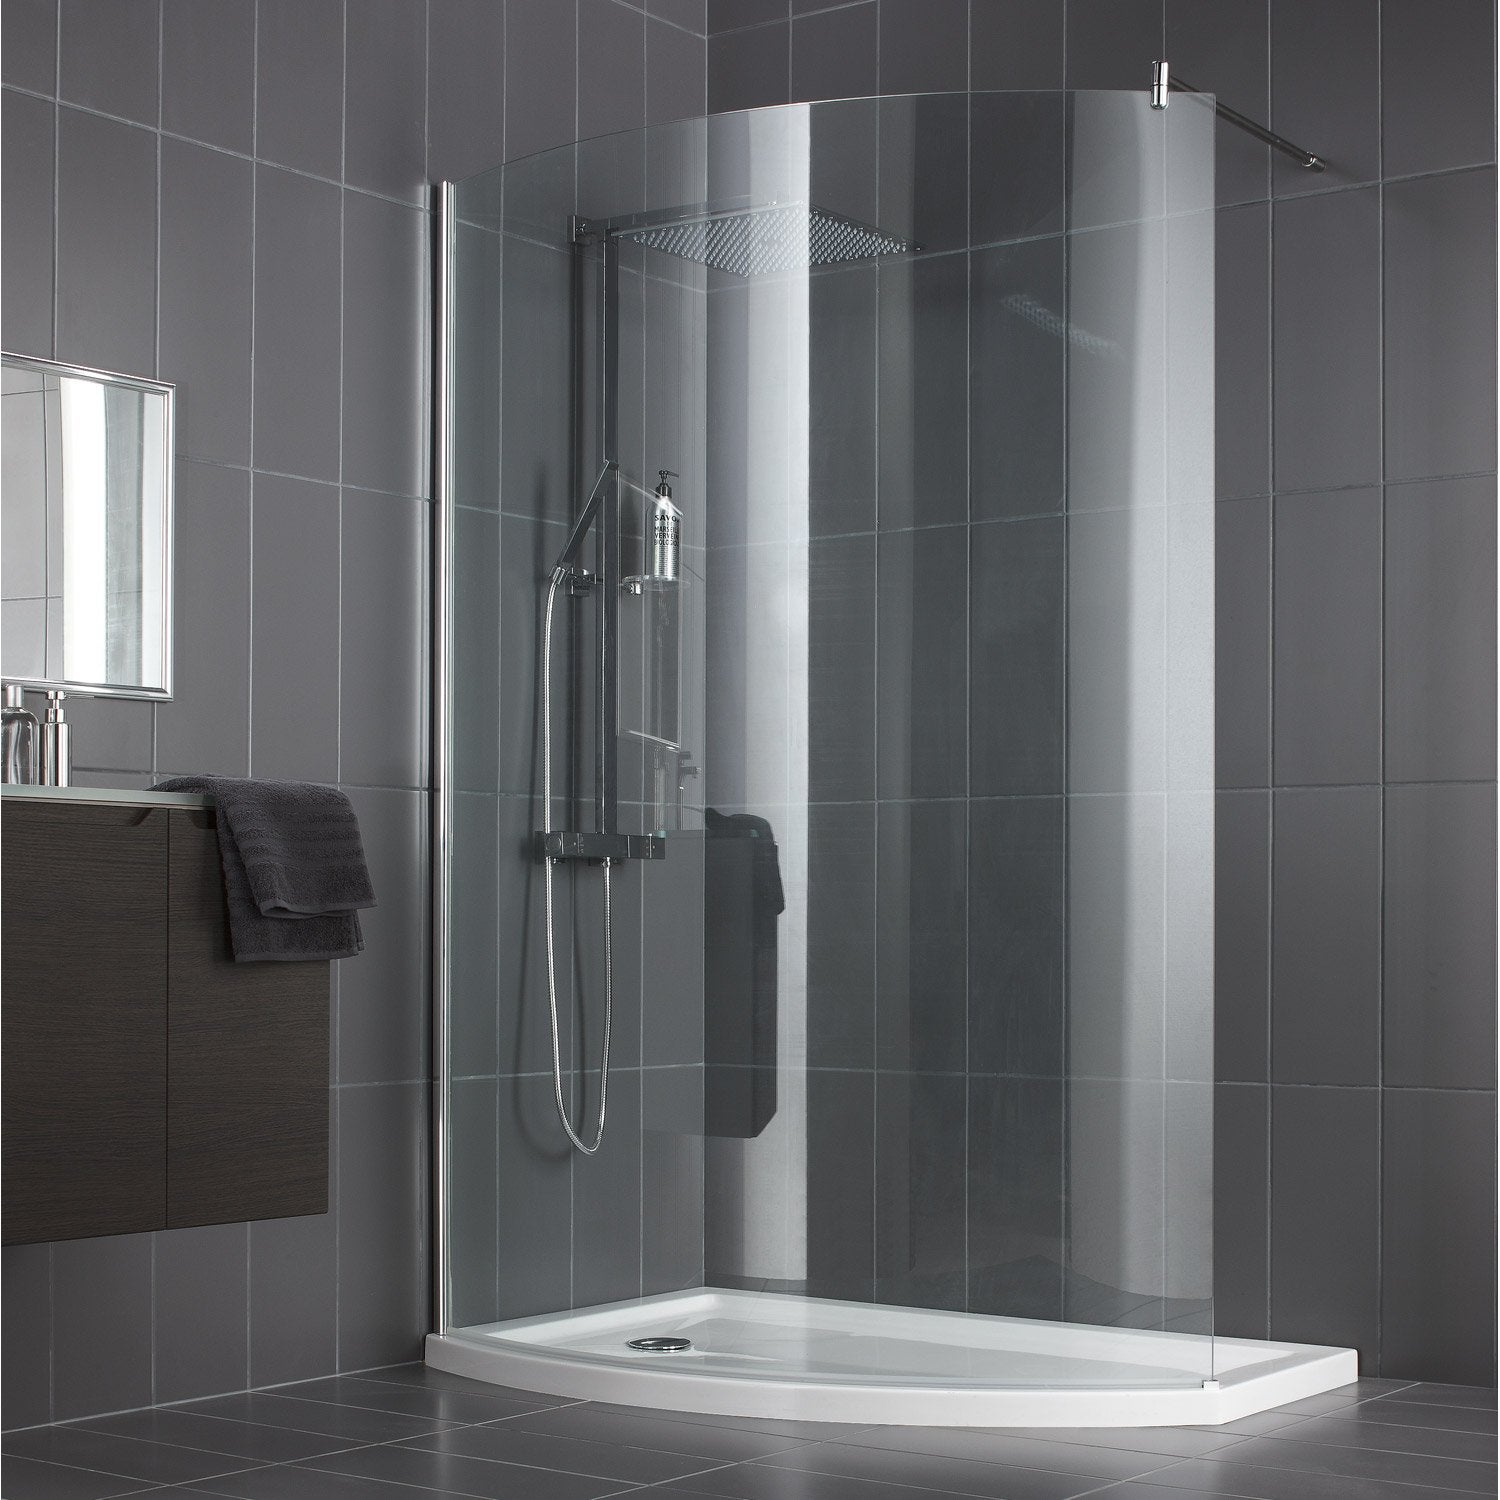 Paroi de douche l 39 italienne look profil chrom l 140cm leroy merlin for Photo de douche a l italienne